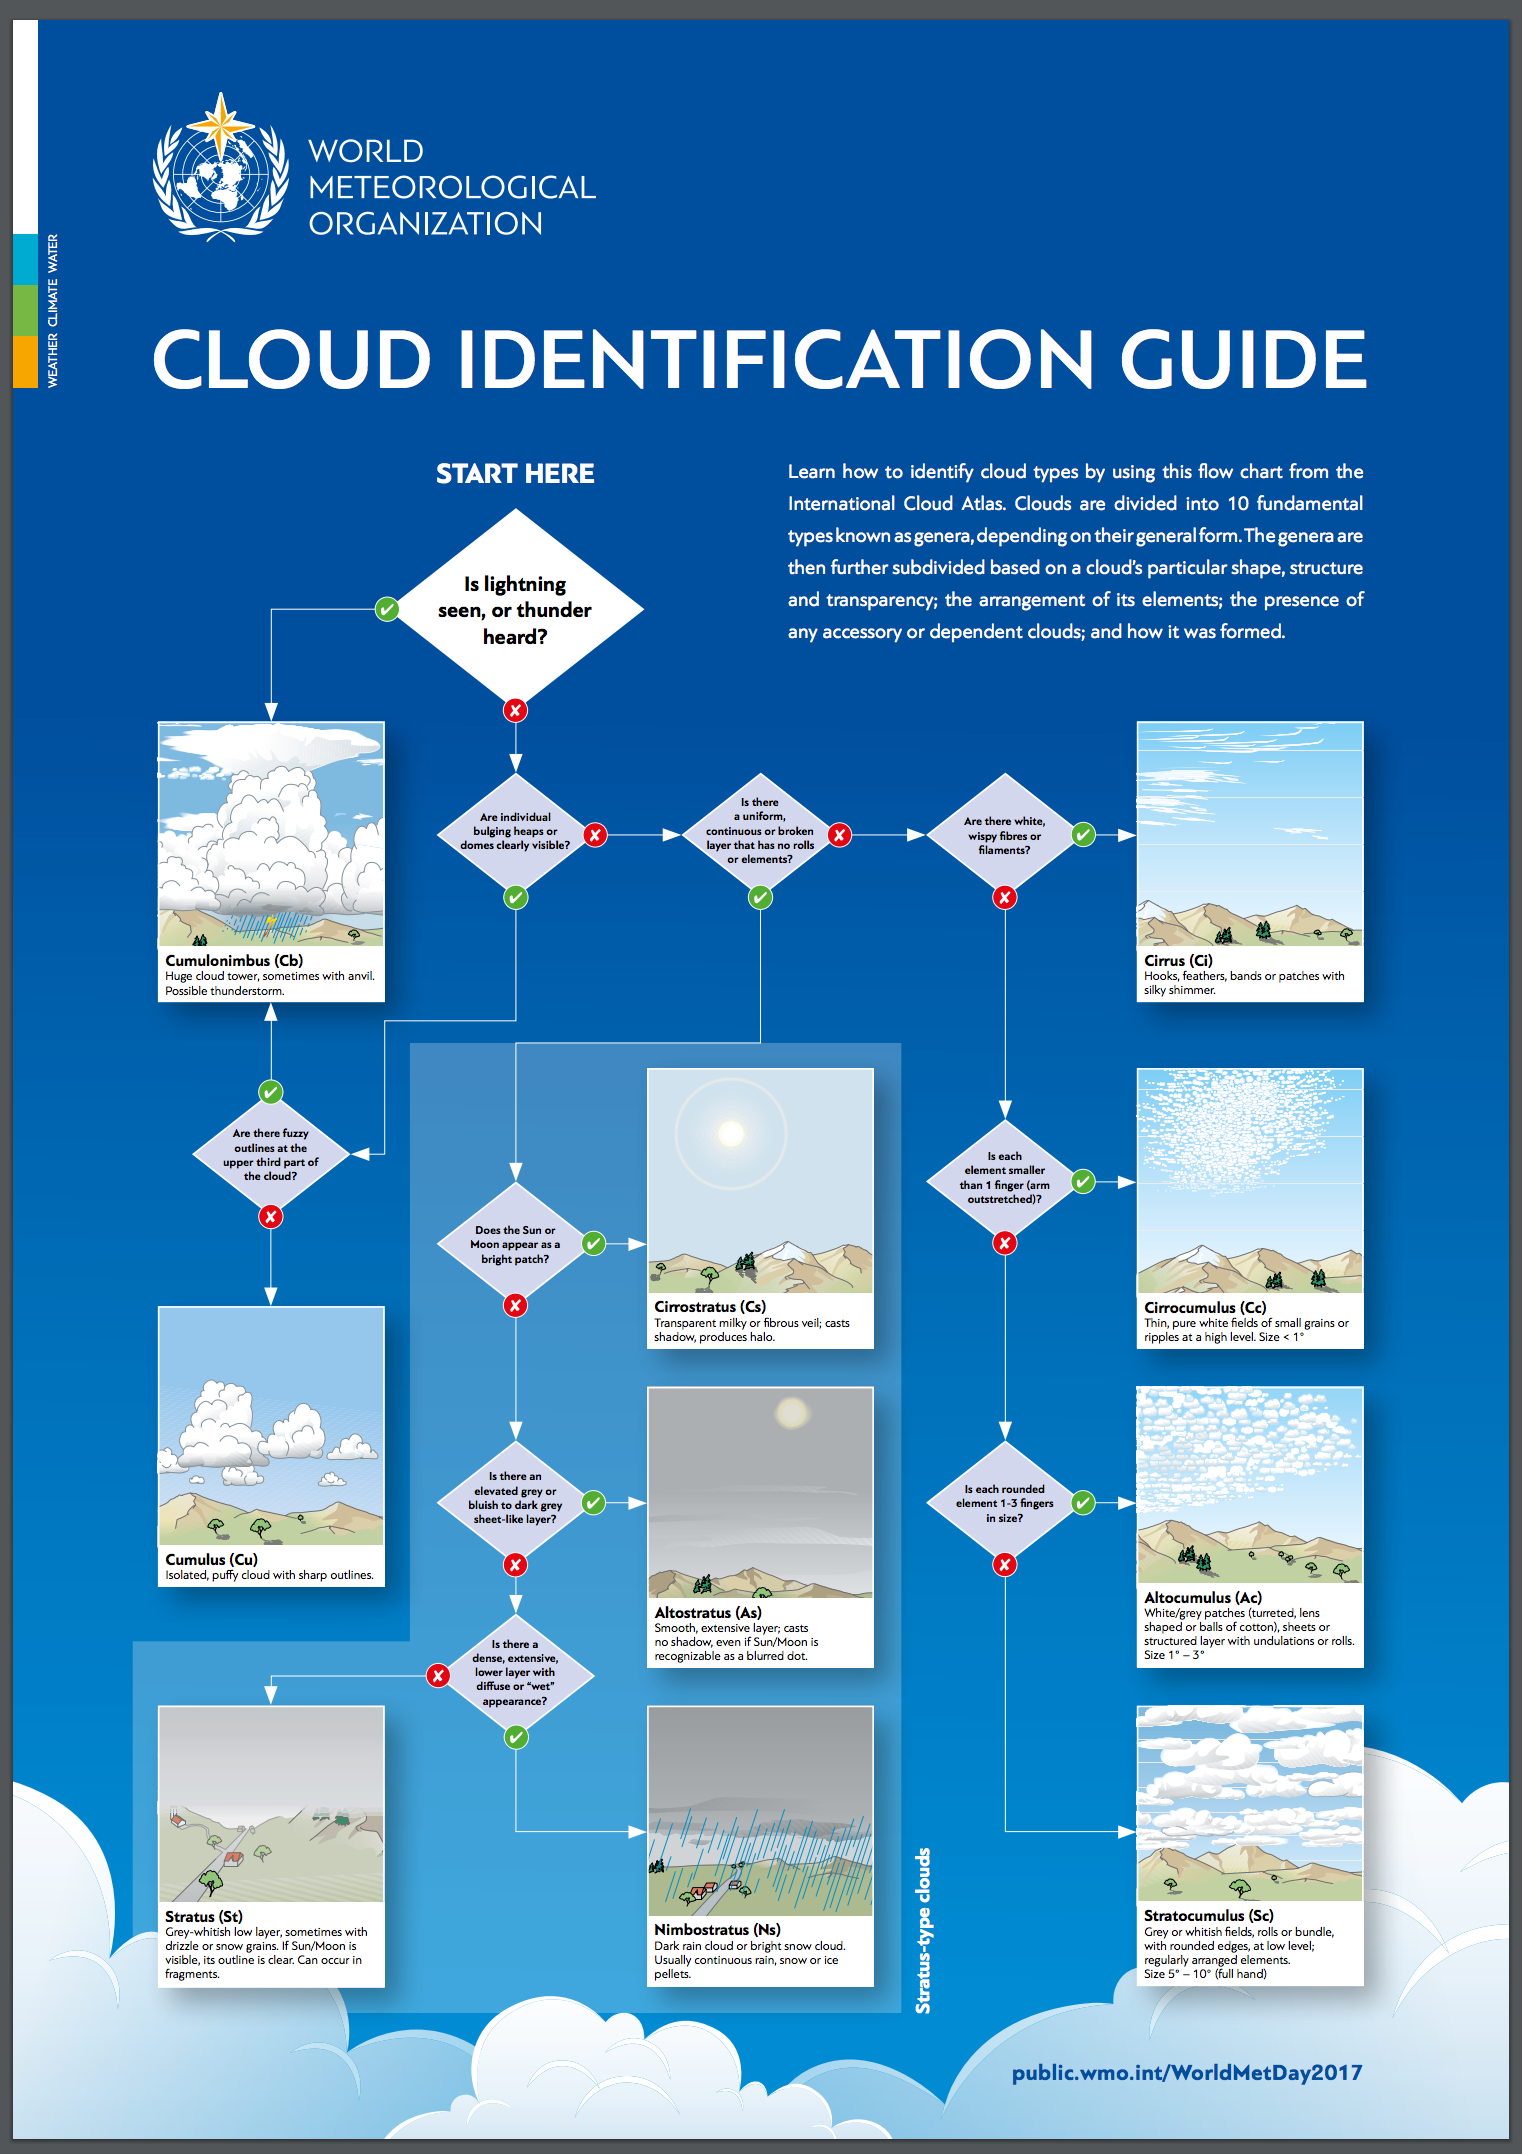 Cloud Classification Guide